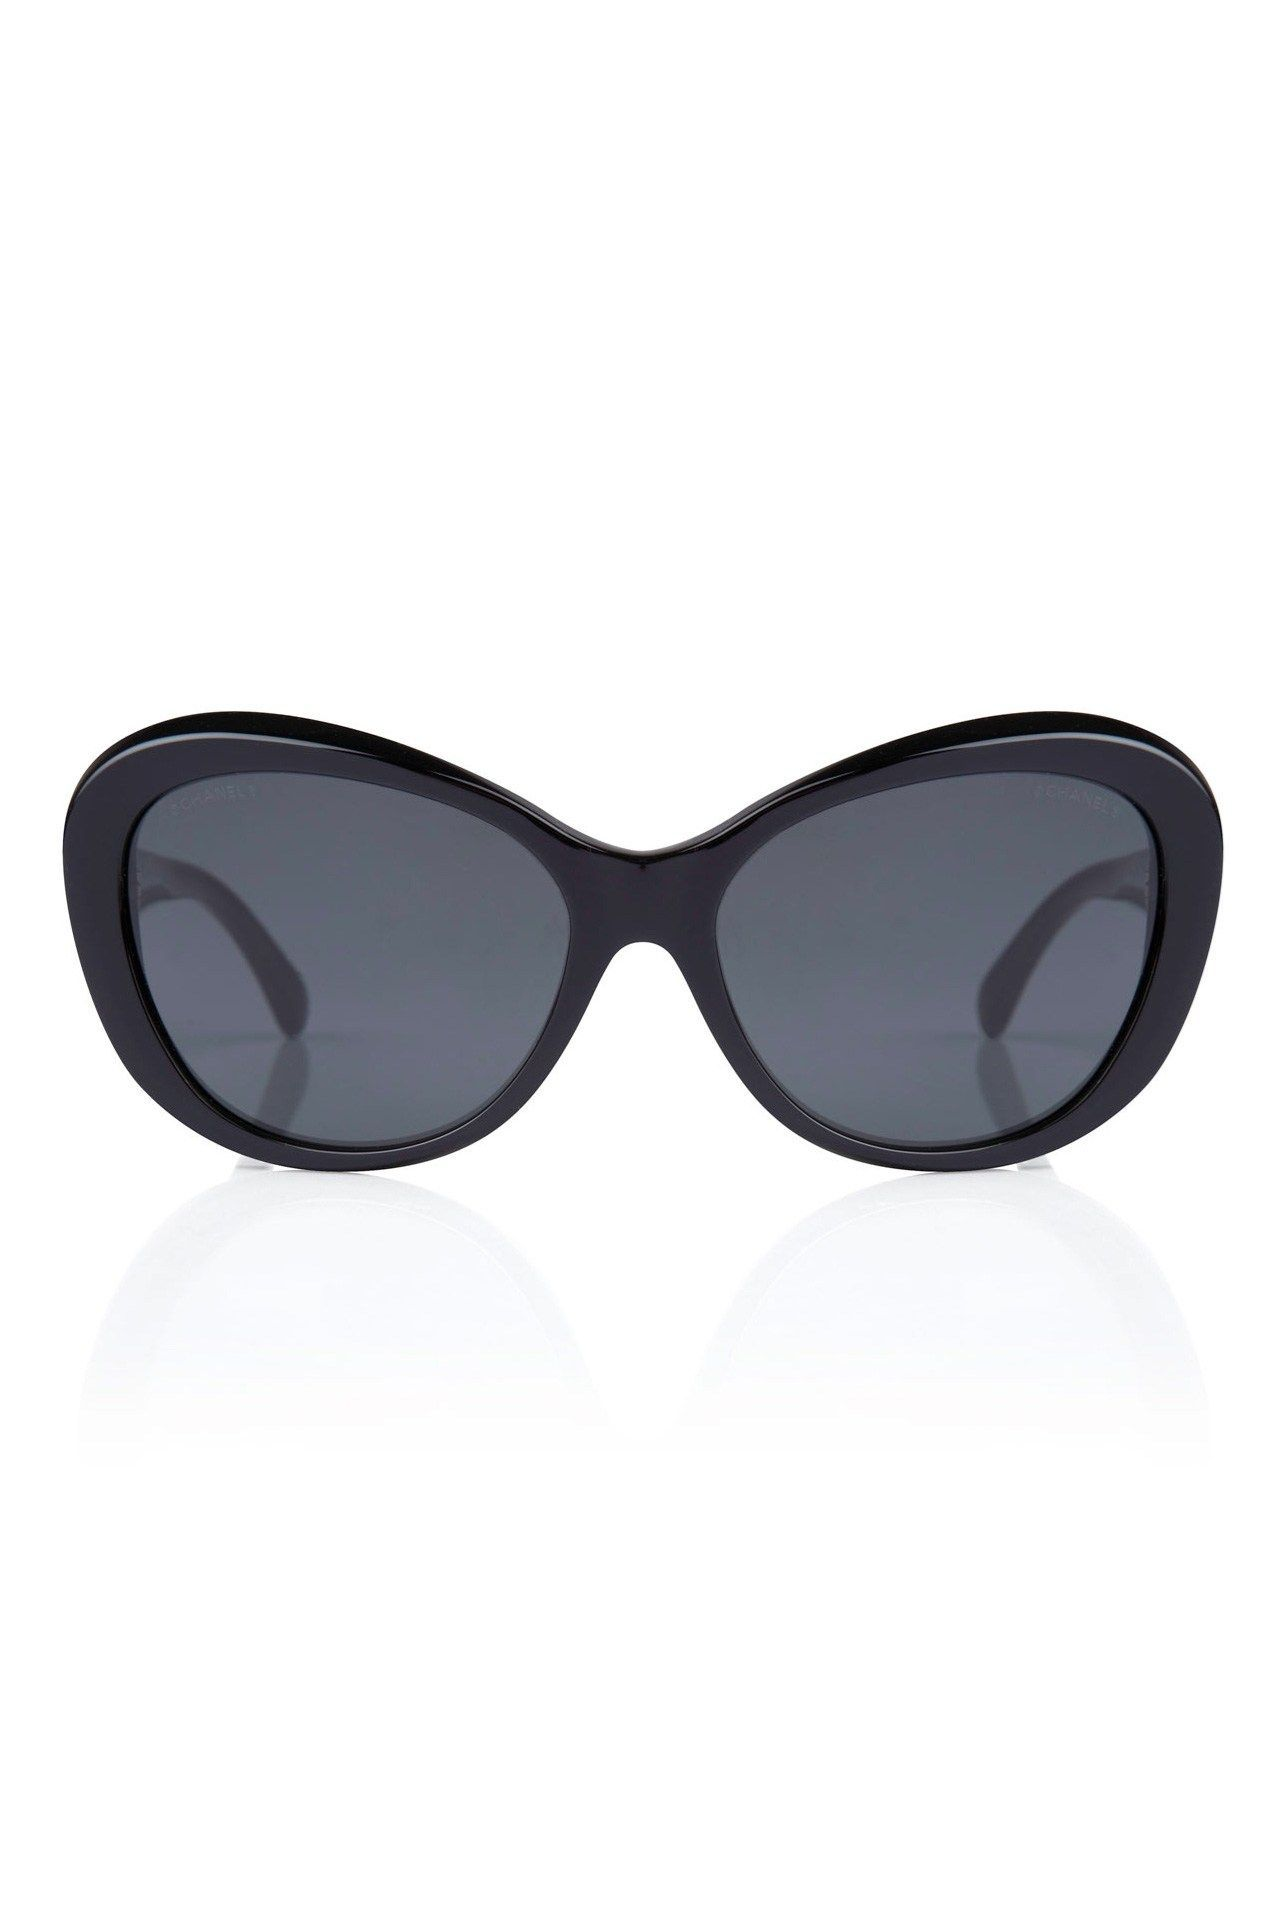 5e8eeaaafe53 2013 Best Sunglasses | Chanel - Holly Golightly would snap these up ...